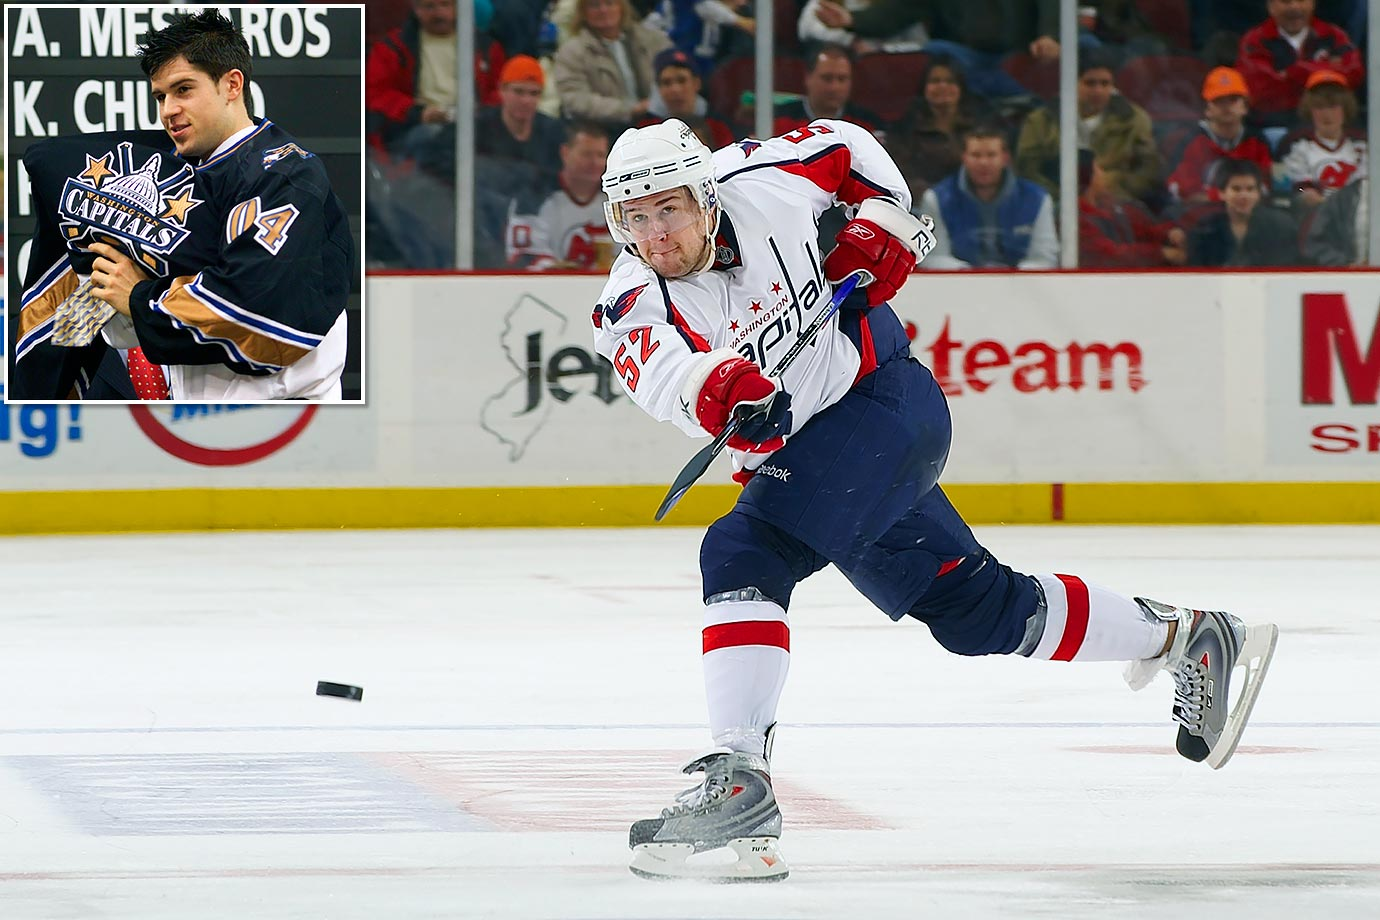 On Feb. 27, 2004, the Capitals sent Robert Lang to Detroit for Tomas Fleischmann, a first-rounder and a 2006 fourth-rounder. The '06 pick was a bust (Luke Lynes) but the Caps did all right with #29 in '04. Green went on to become one of the game's premier offensive blueliners, ranking top-five in franchise history in goals (113) and points (360) by a defenseman.